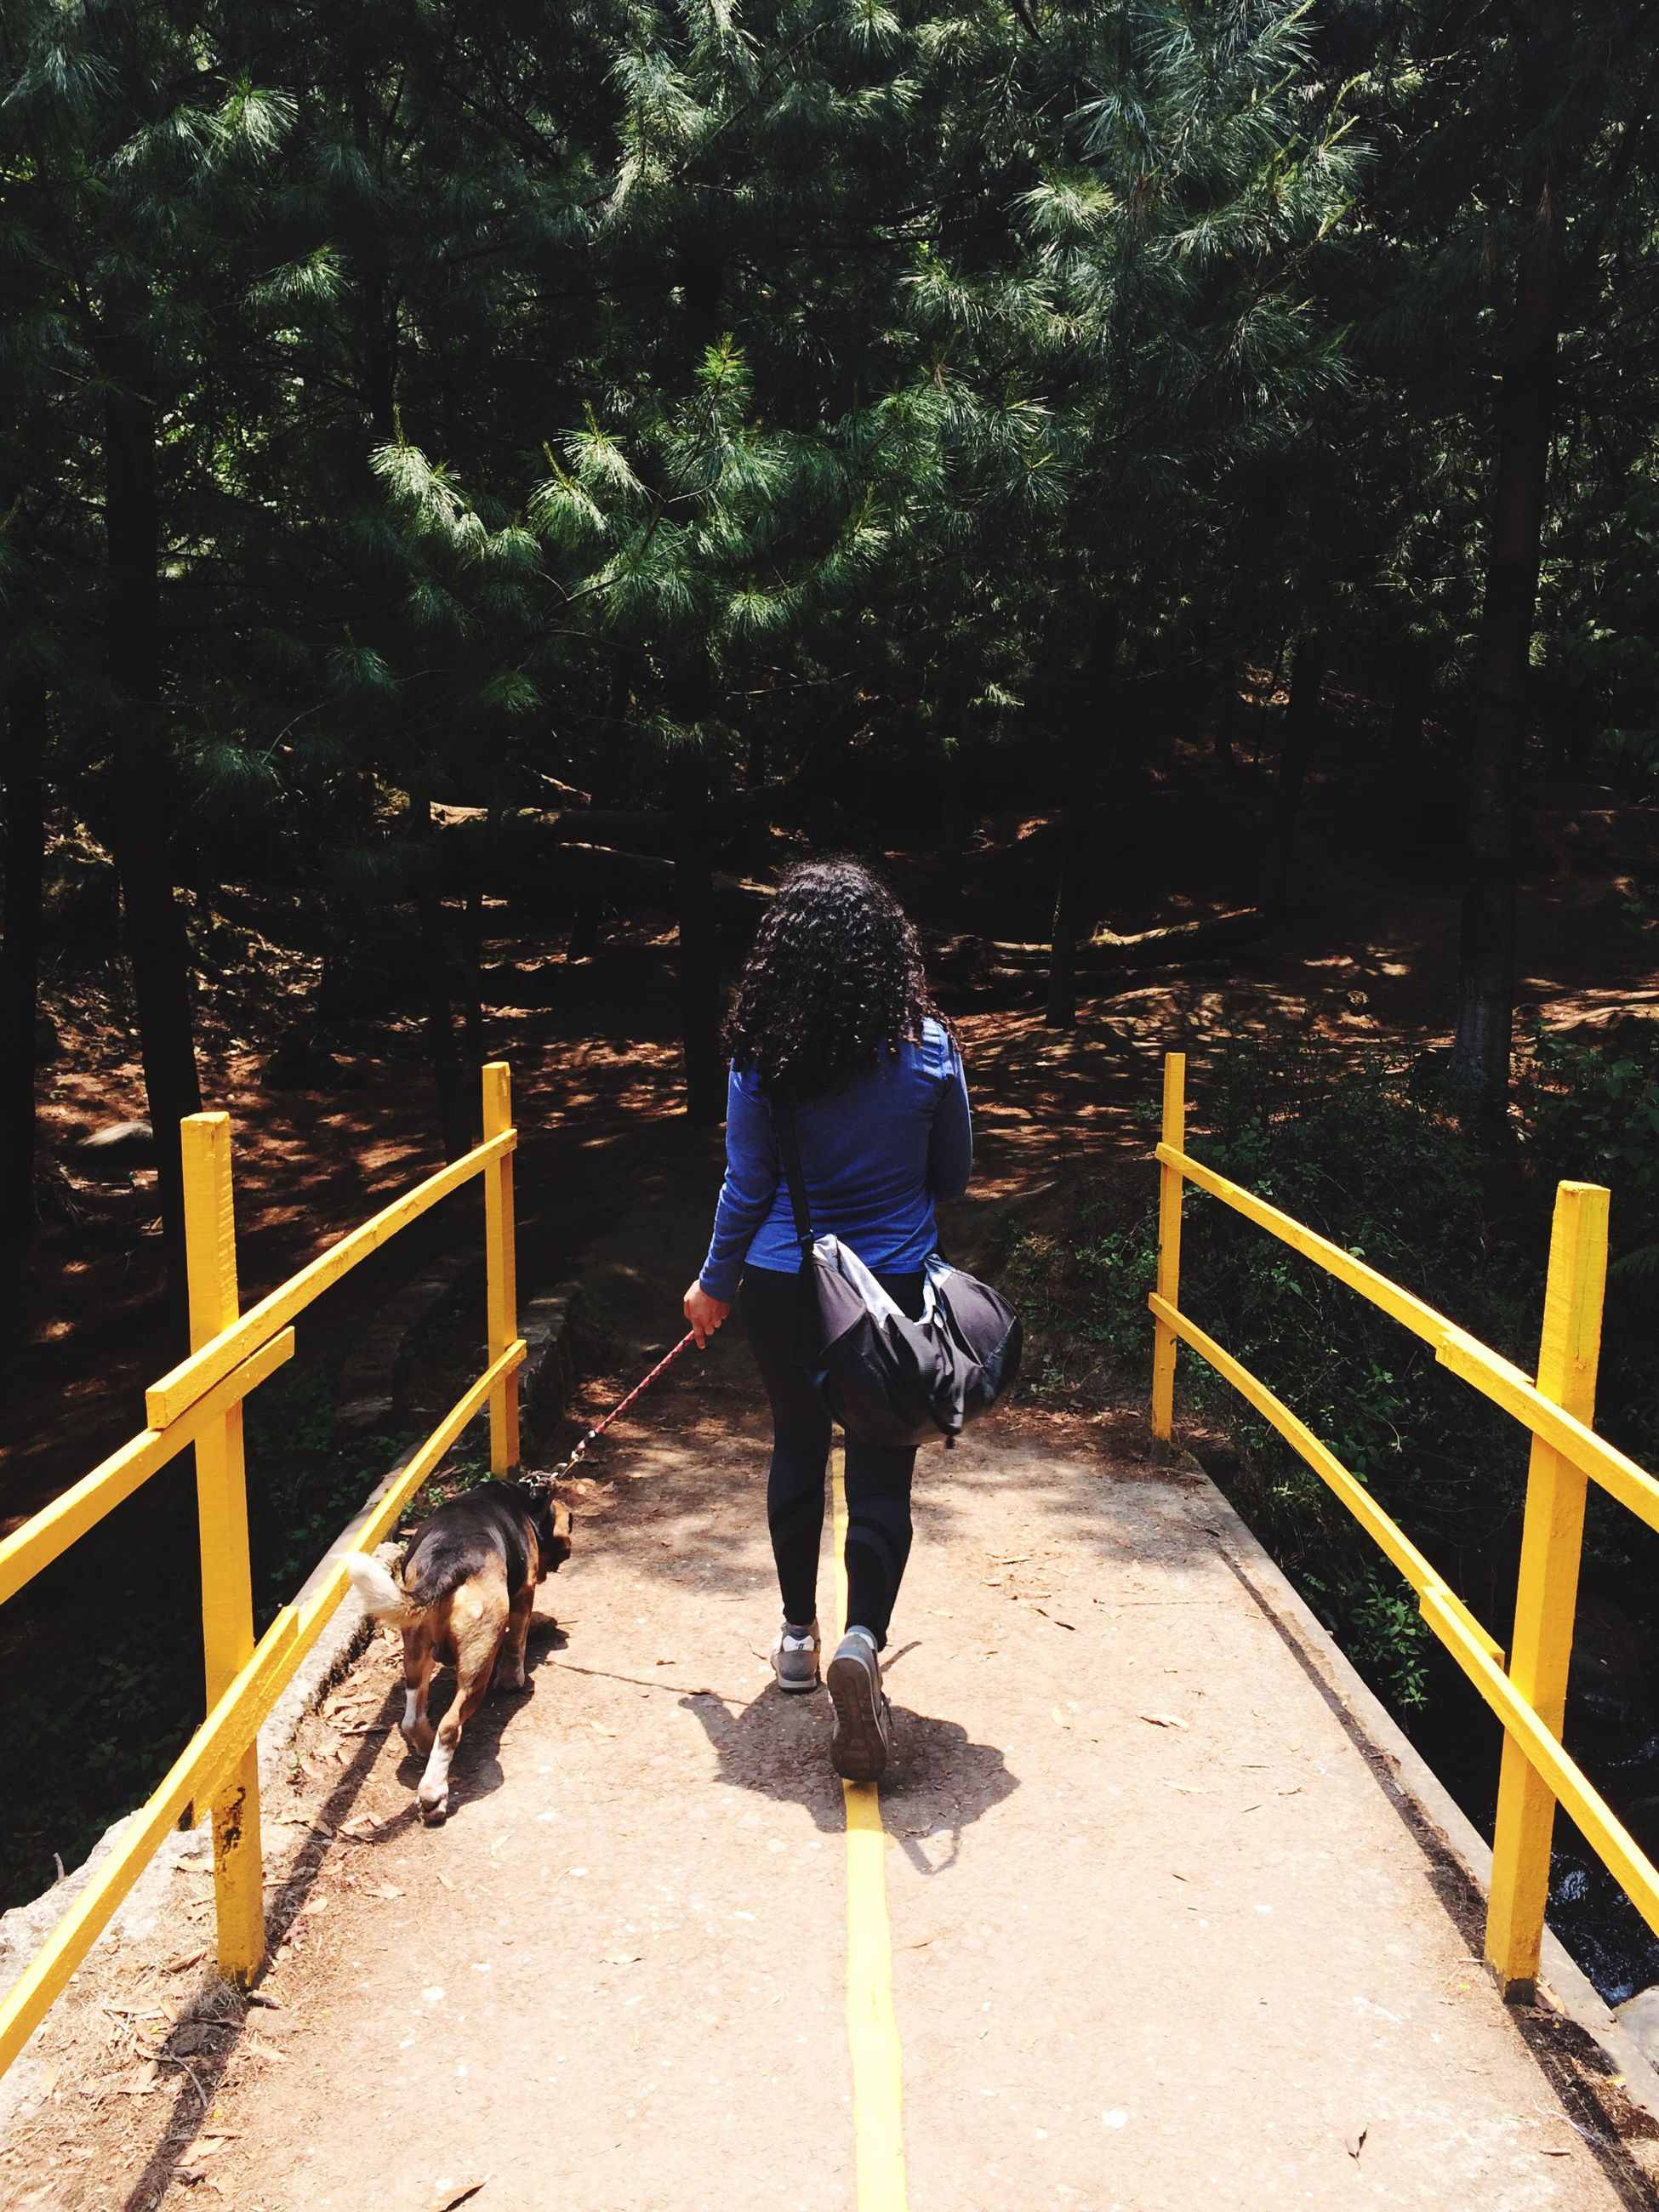 railing, tree, real people, full length, rear view, one person, walking, leisure activity, one animal, outdoors, lifestyles, day, casual clothing, nature, pets, bridge - man made structure, dog, women, mammal, domestic animals, footbridge, beauty in nature, childhood, young women, young adult, people